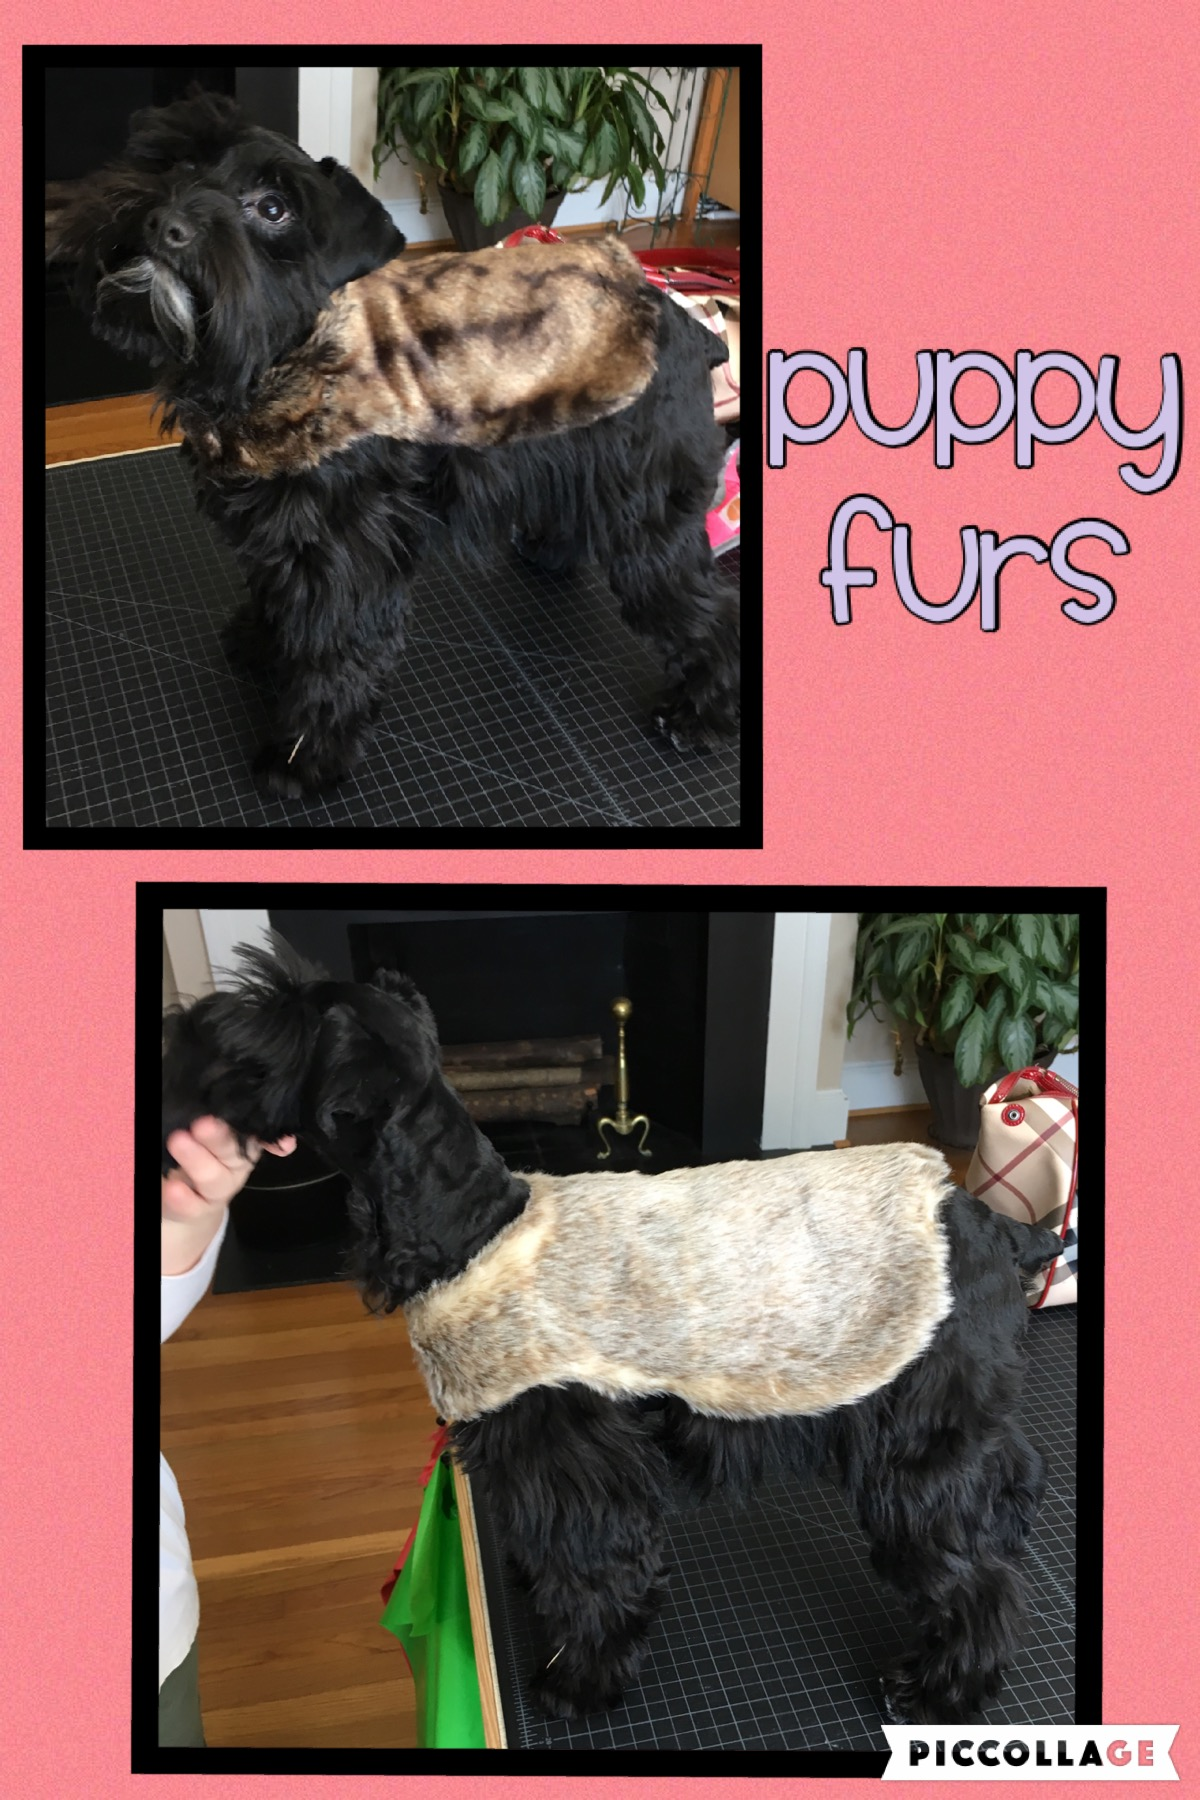 Fur Coats for your puppys